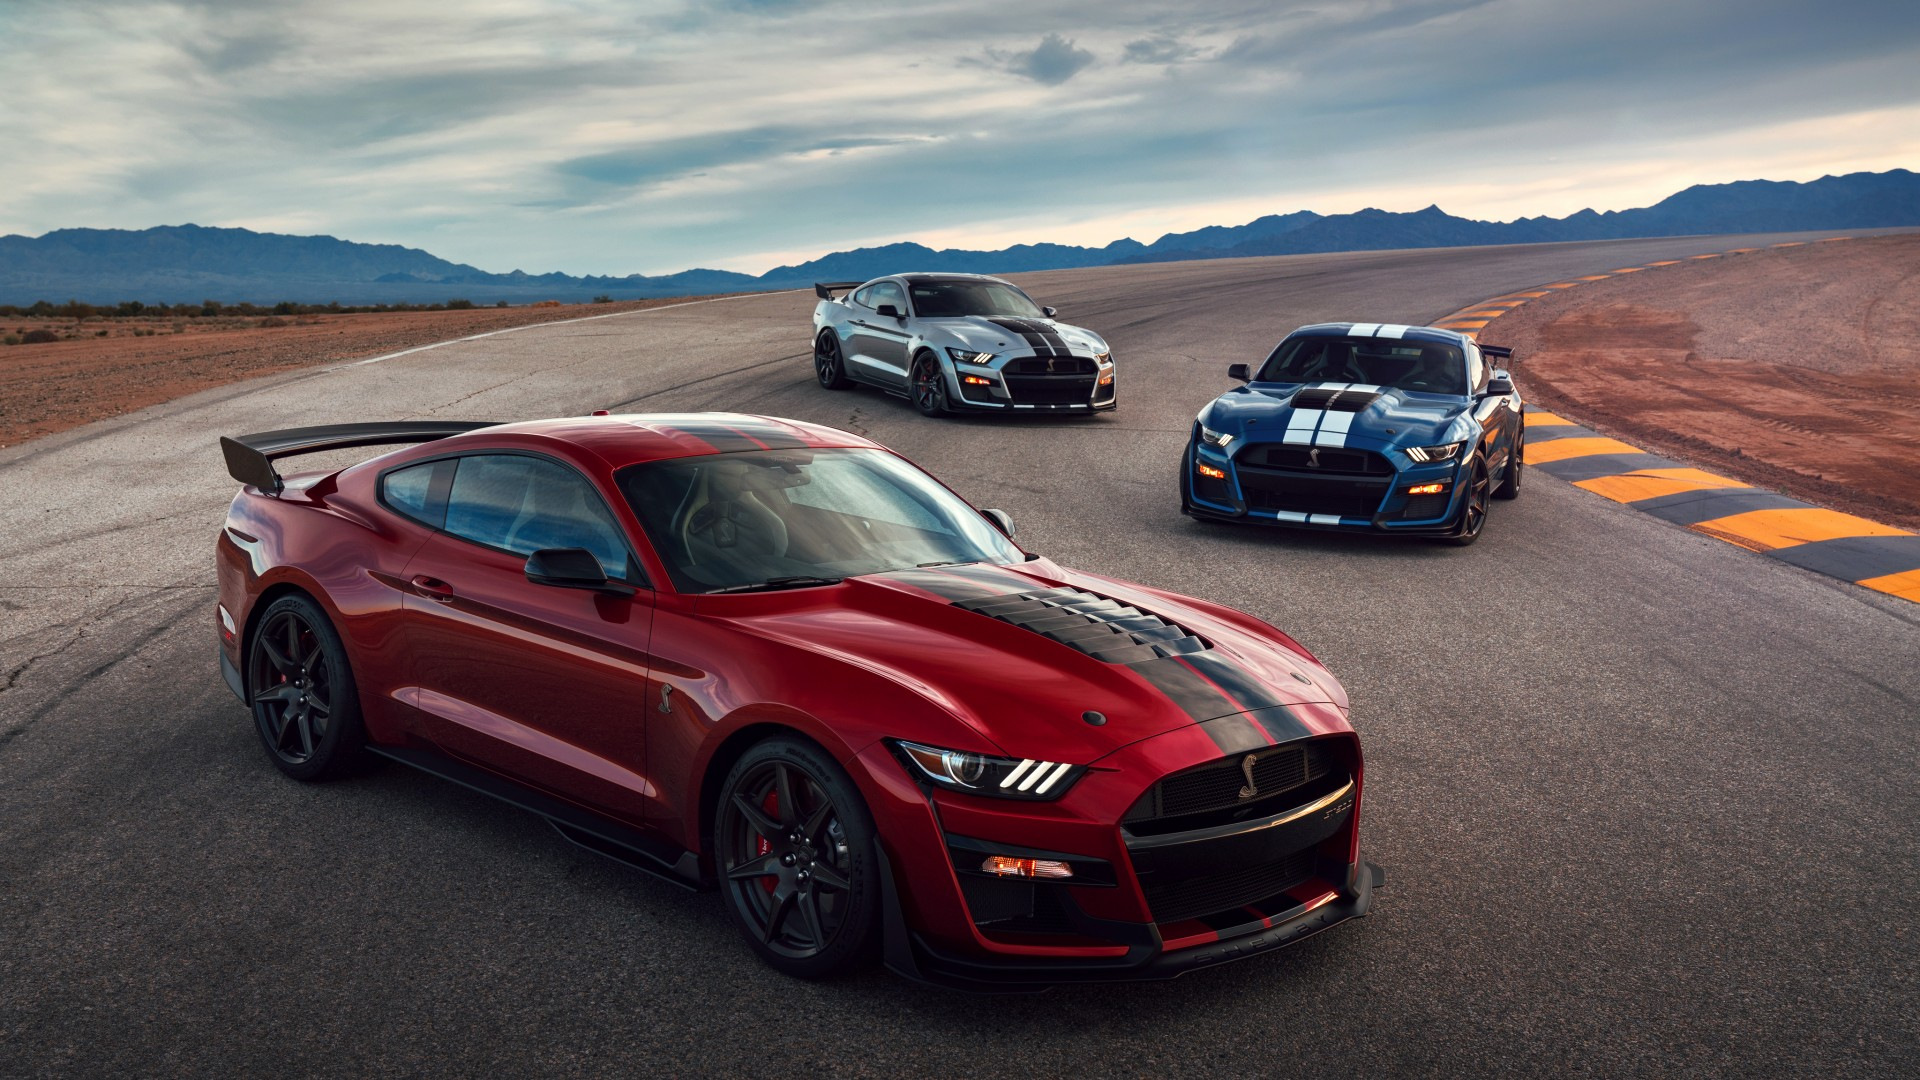 2020 Ford Mustang Shelby Gt500 4k 3 Wallpaper Hd Car Wallpapers Id 11889